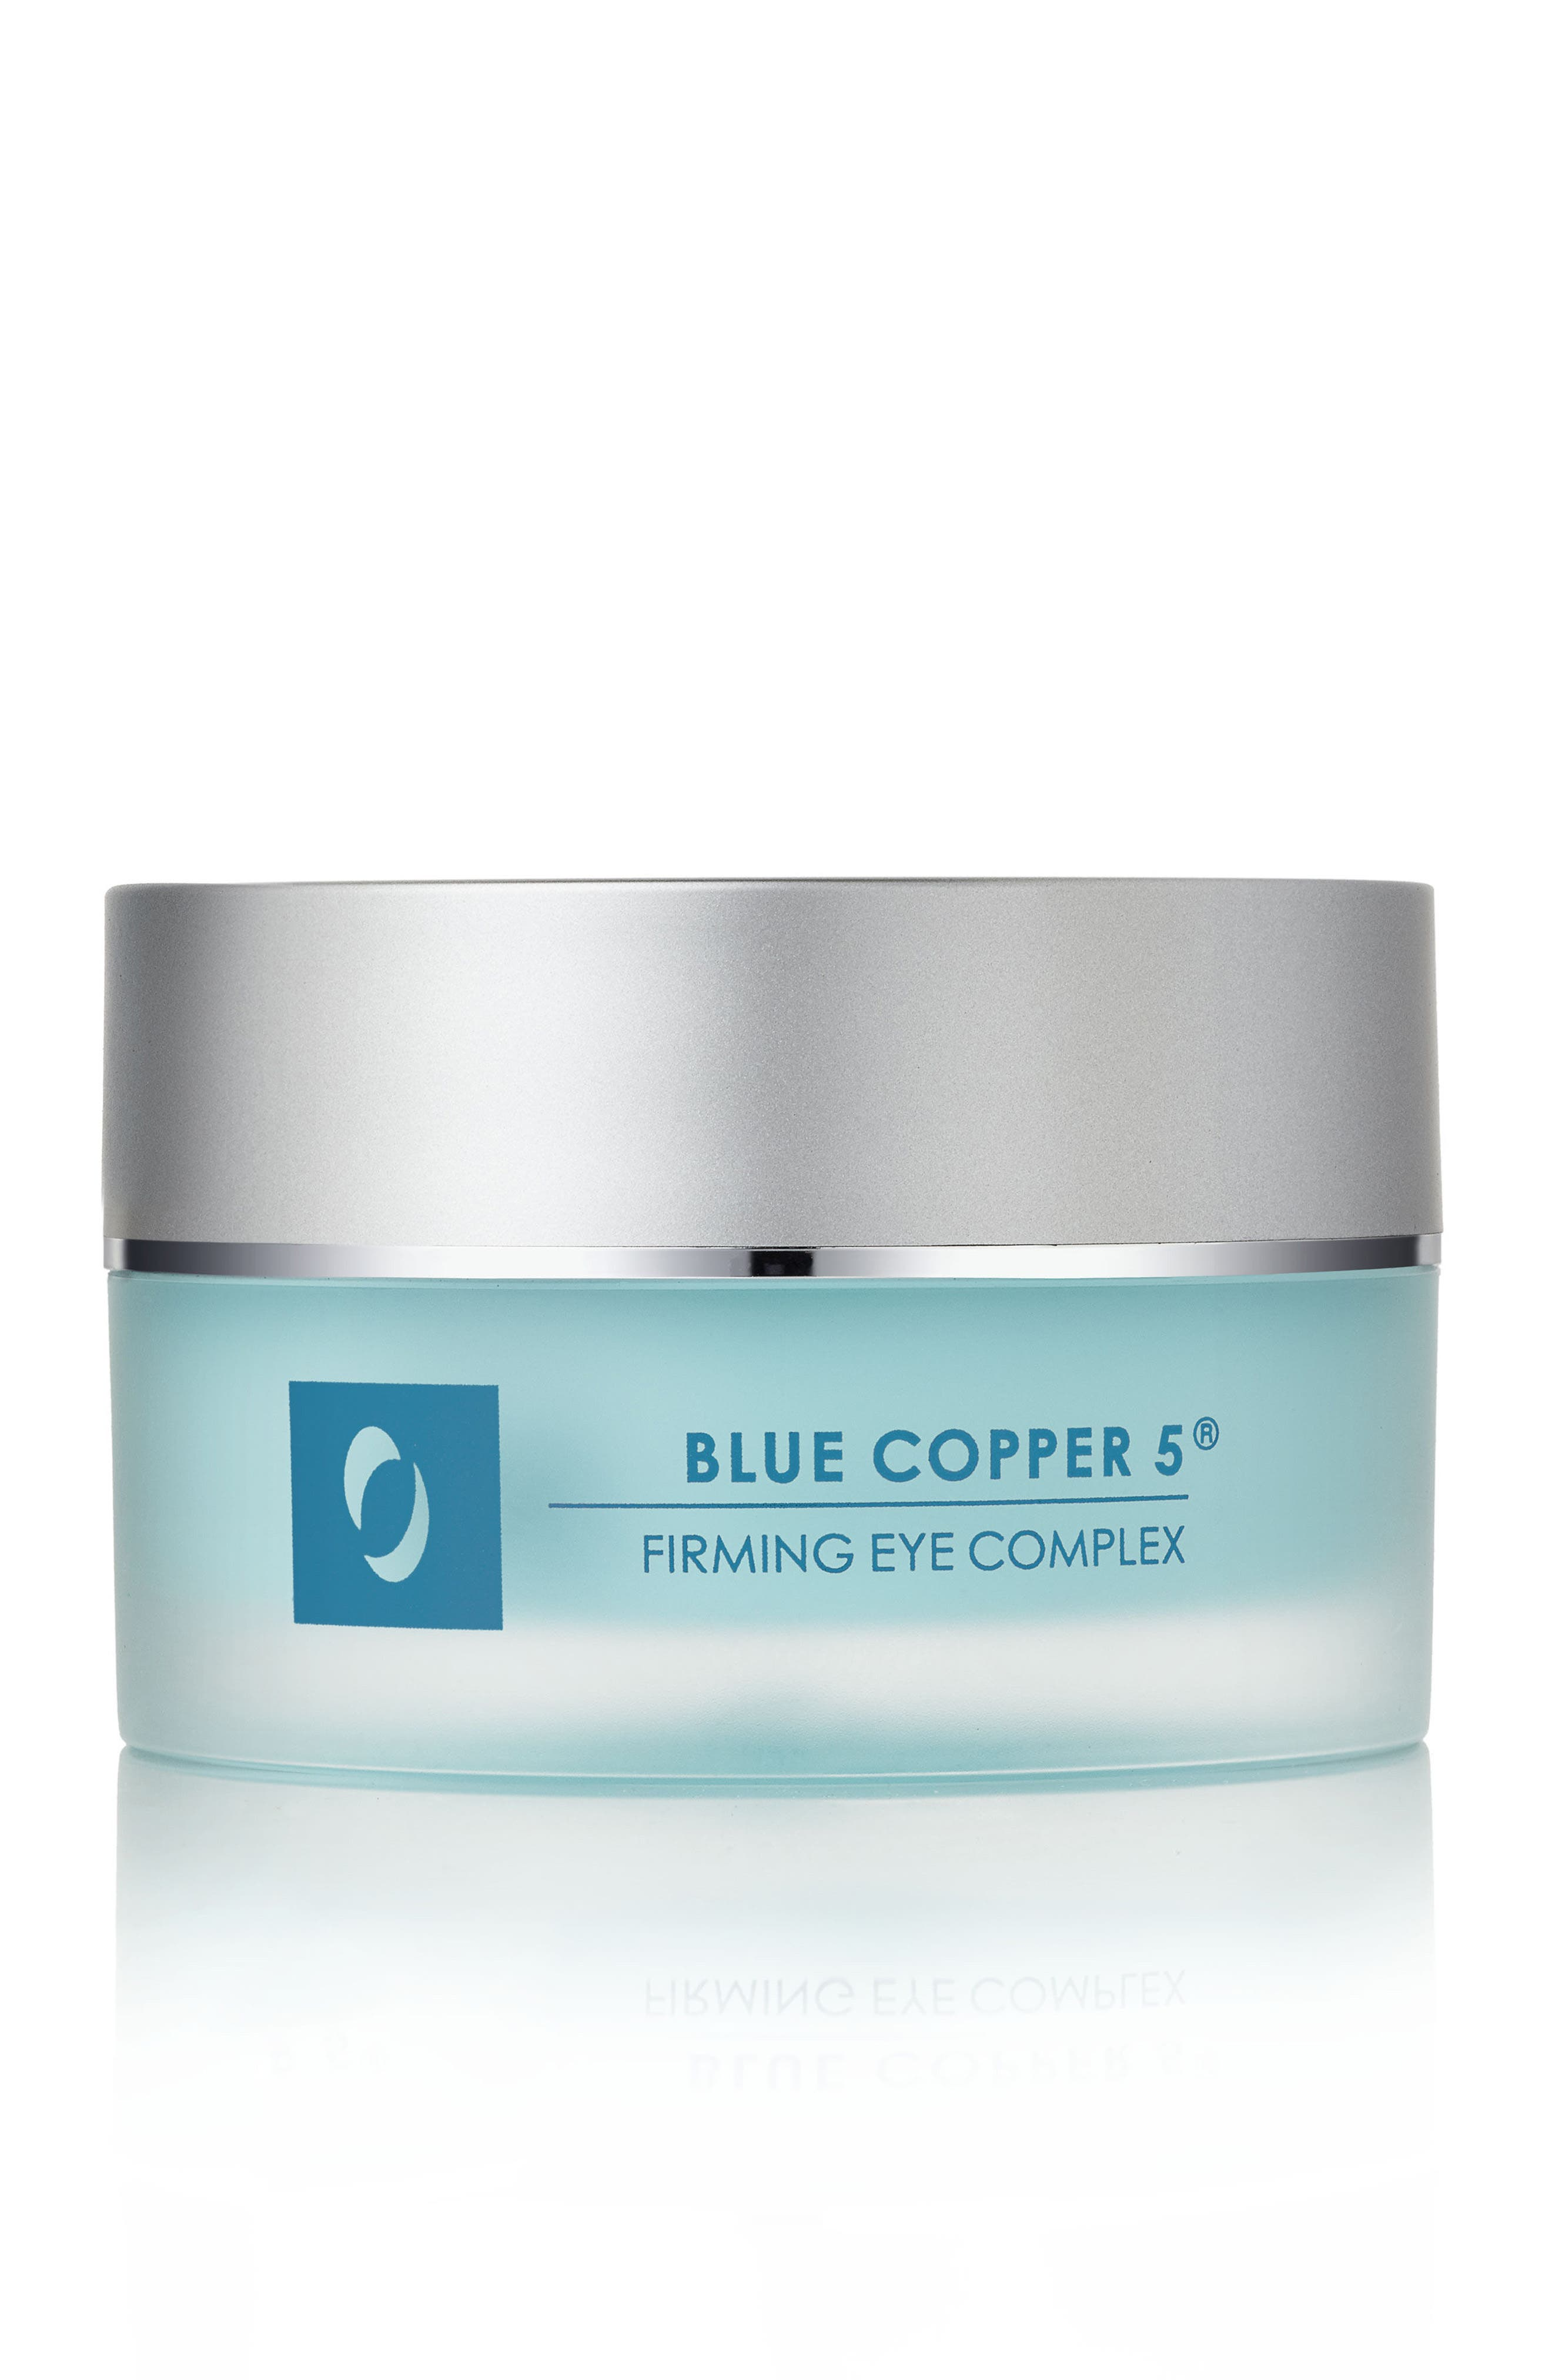 Blue Copper 5 Firming Eye Complex,                         Main,                         color, NO COLOR